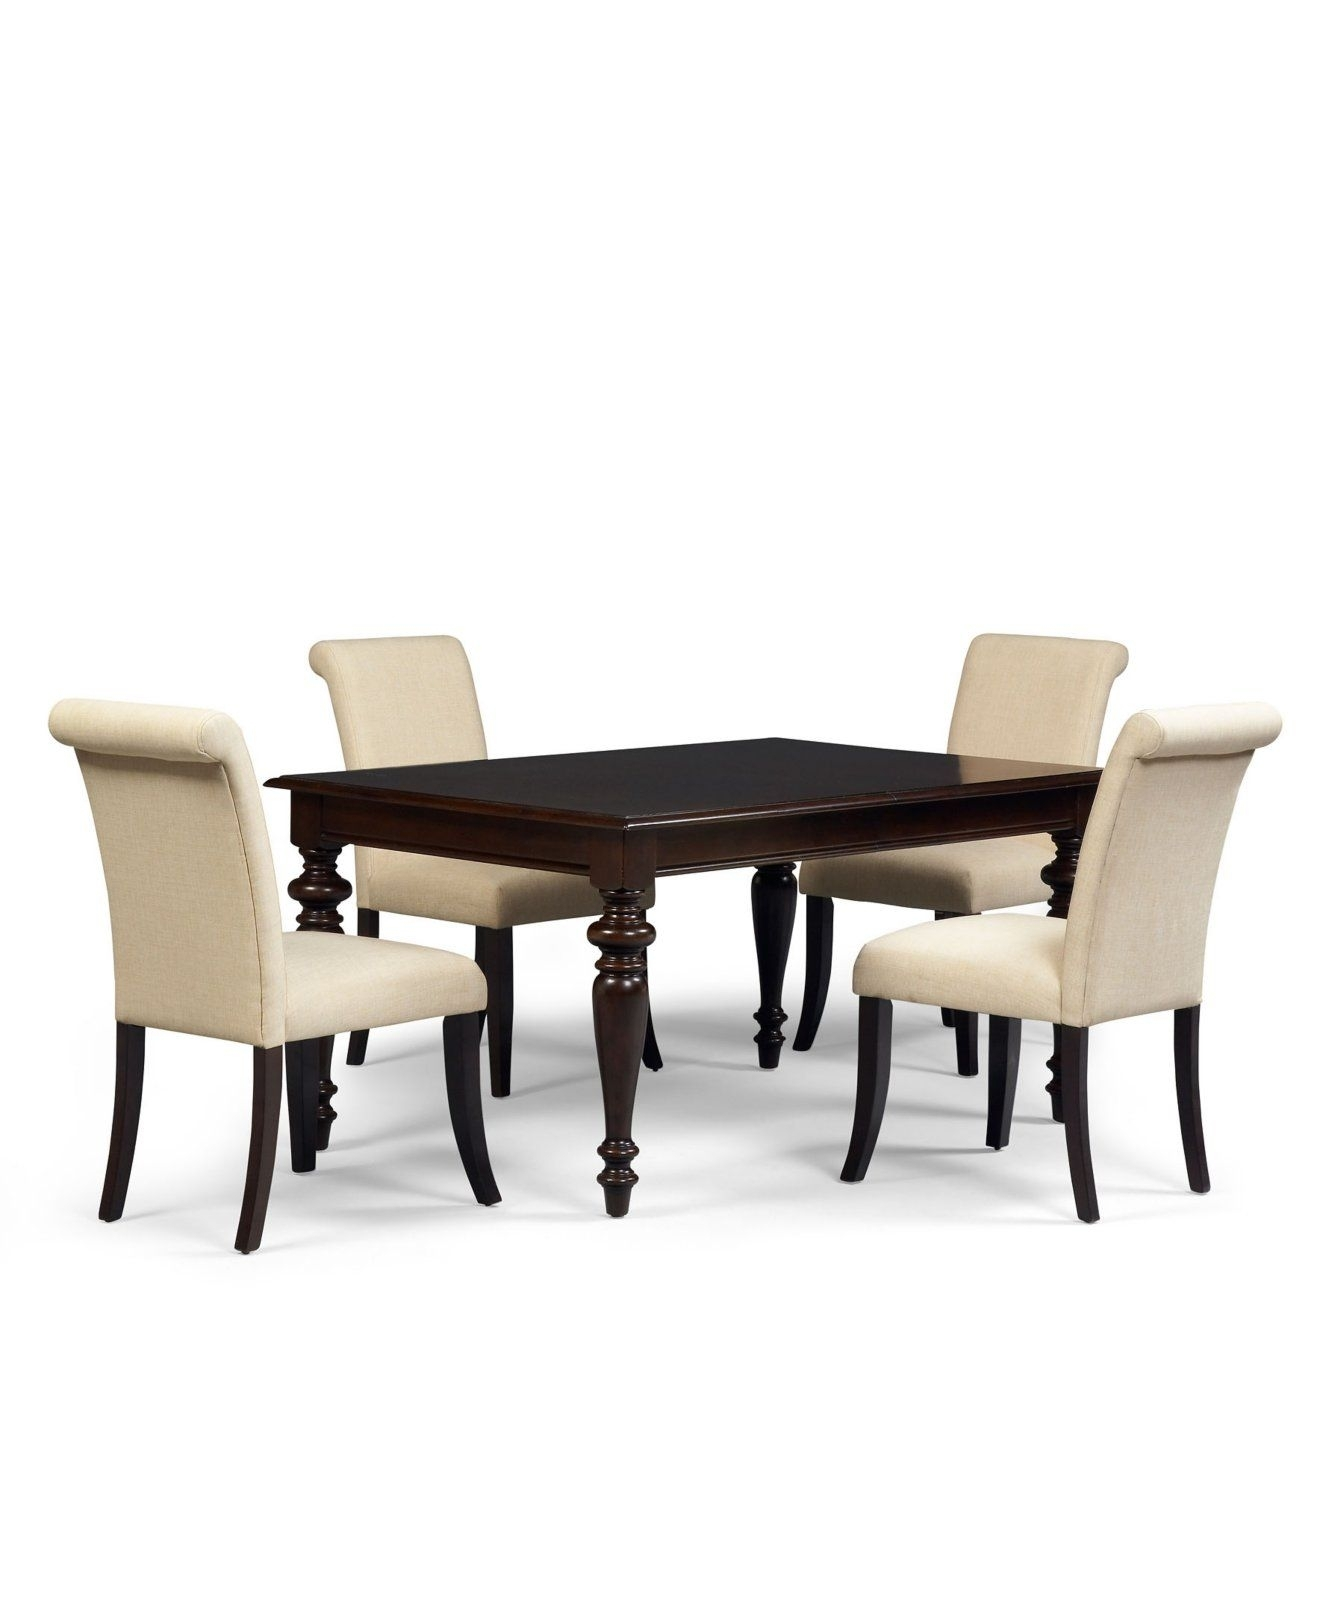 Bradford 5 Piece Dining Room Furniture Set With Upholstered Chairs Inside Most Up To Date Bradford Dining Tables (View 17 of 20)